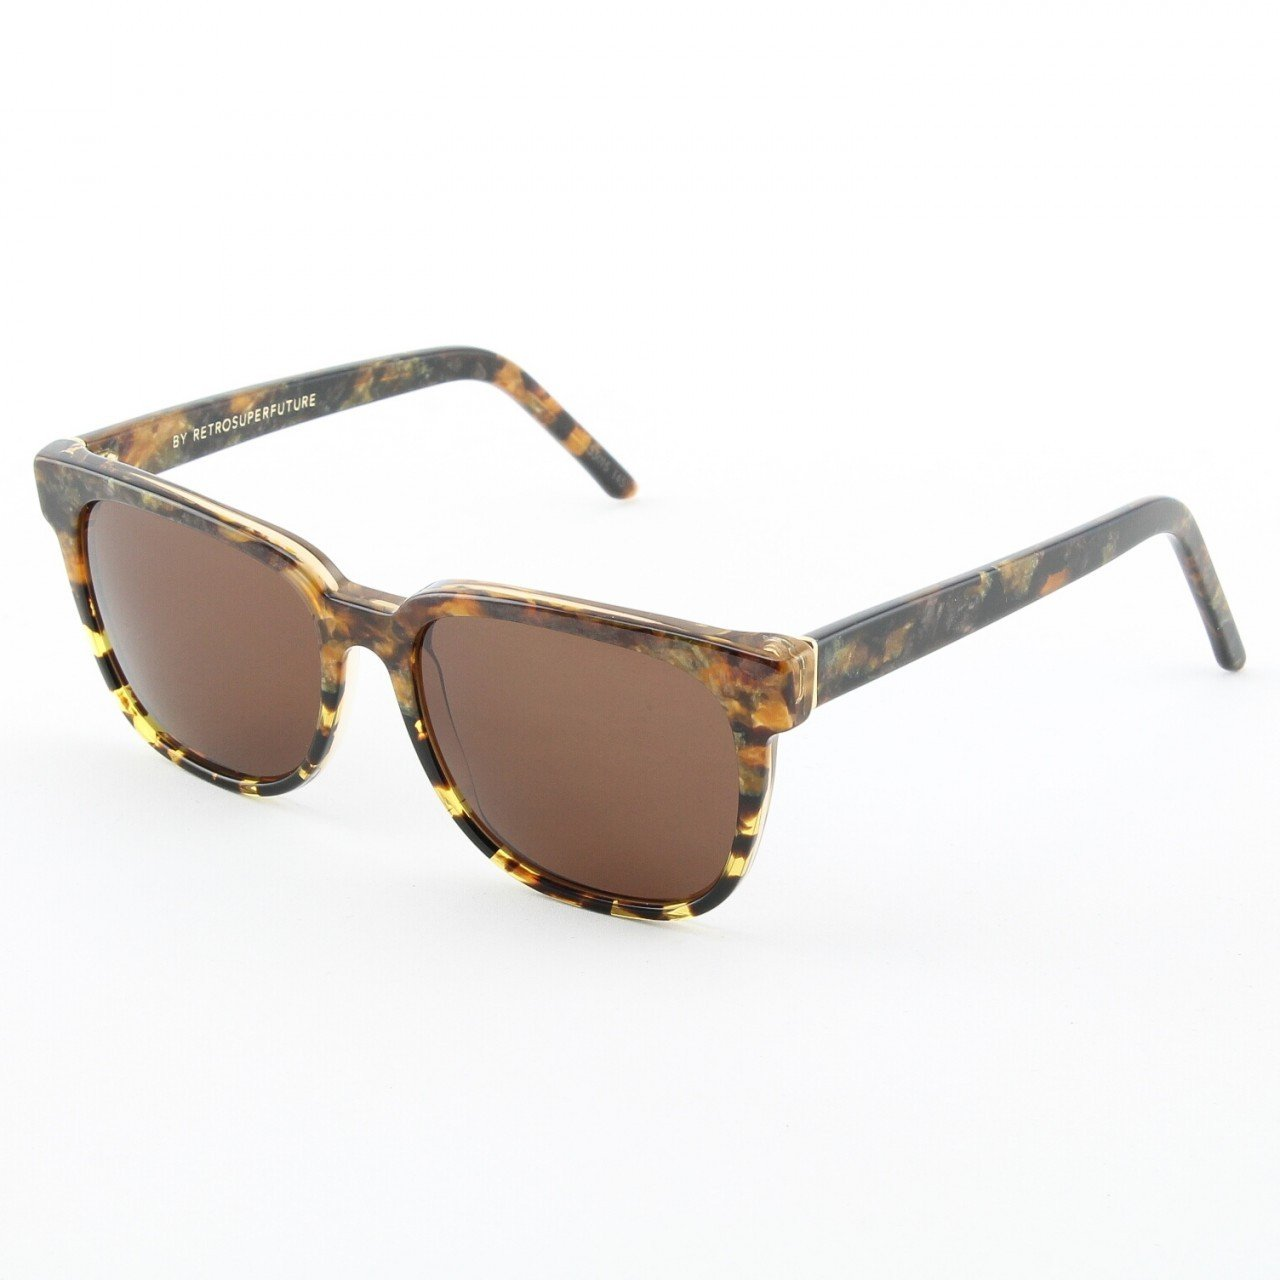 Super People 531/3A Sunglasses Brown Beige Stone with Brown Zeiss Lenses by RETROSUPERFUTURE